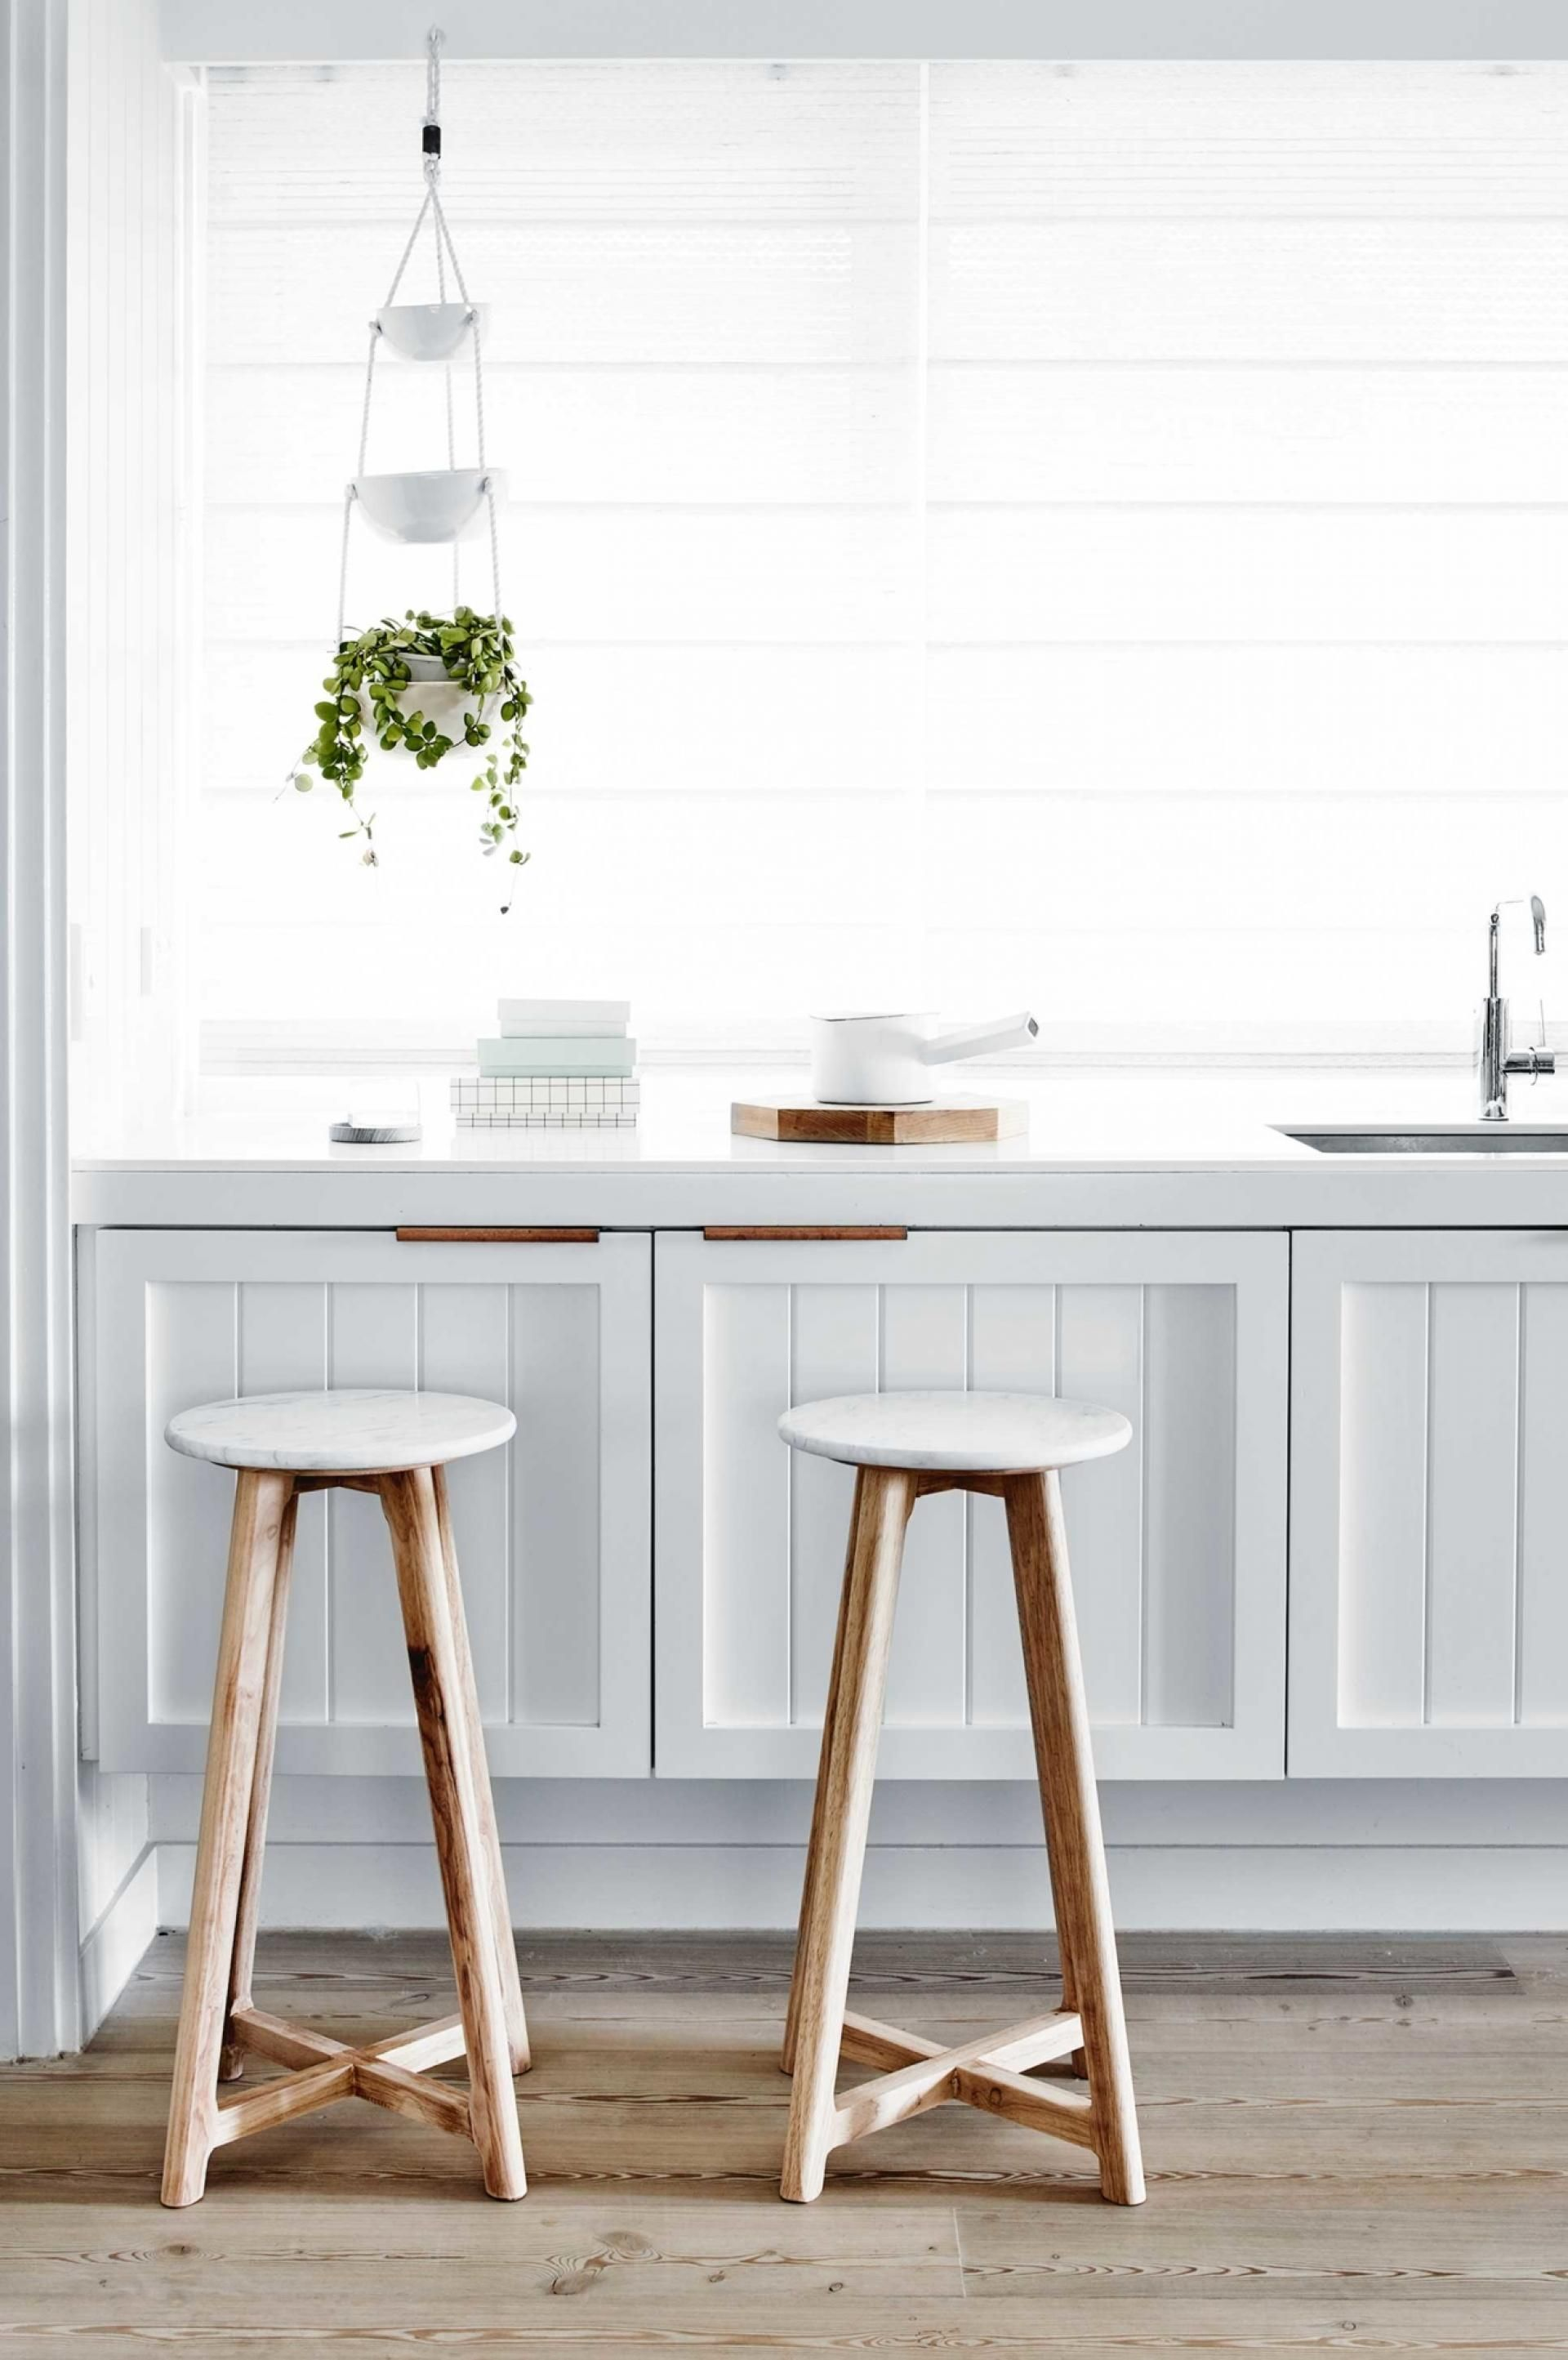 Best Kitchen Stools Plan Kitchen Remodel Home Kitchen Stools Cool Bar Stools